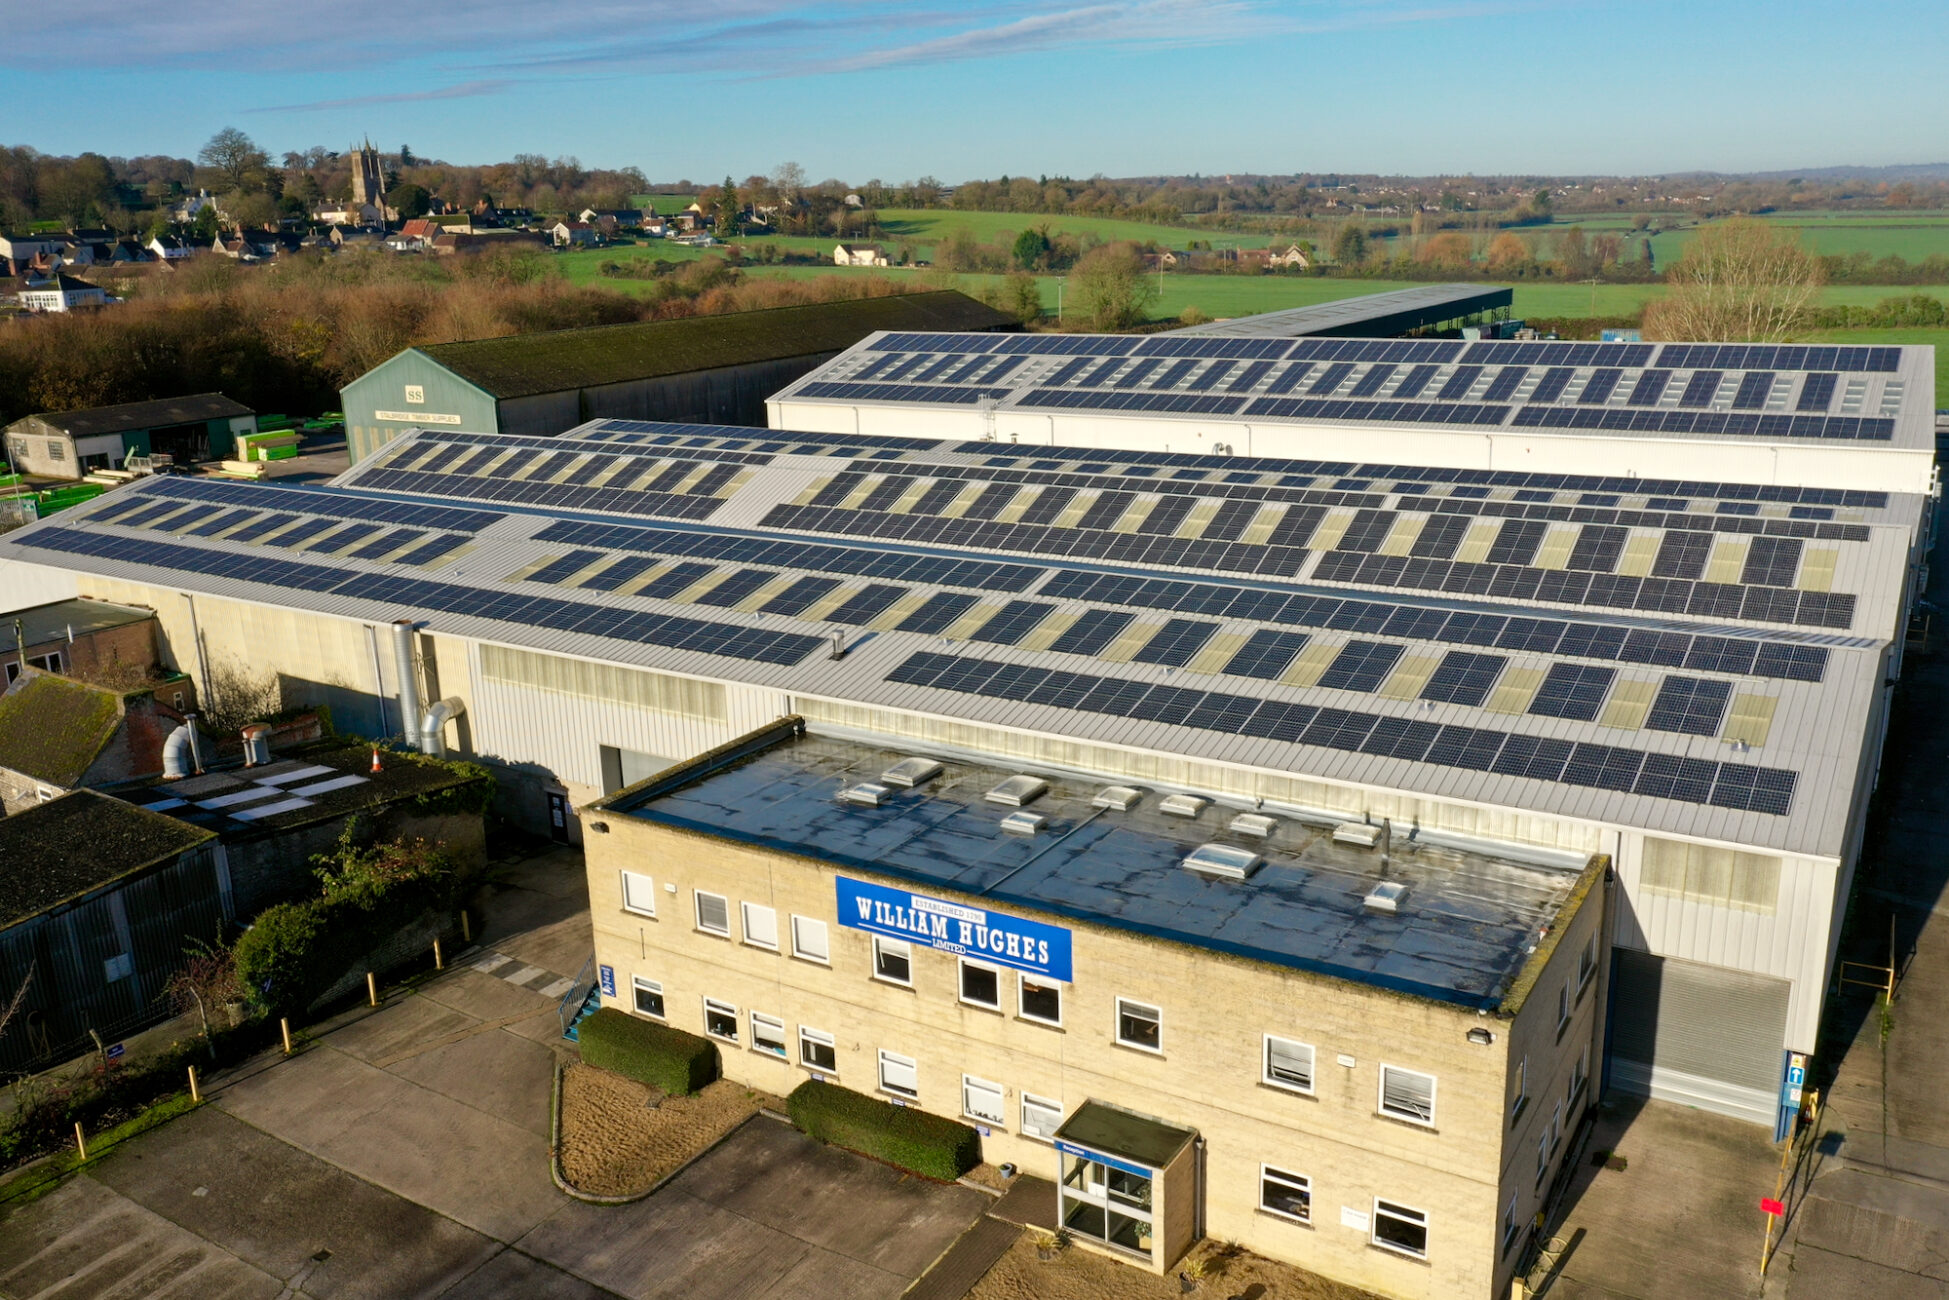 CleanEarth solar PV installation for William Hughes Group